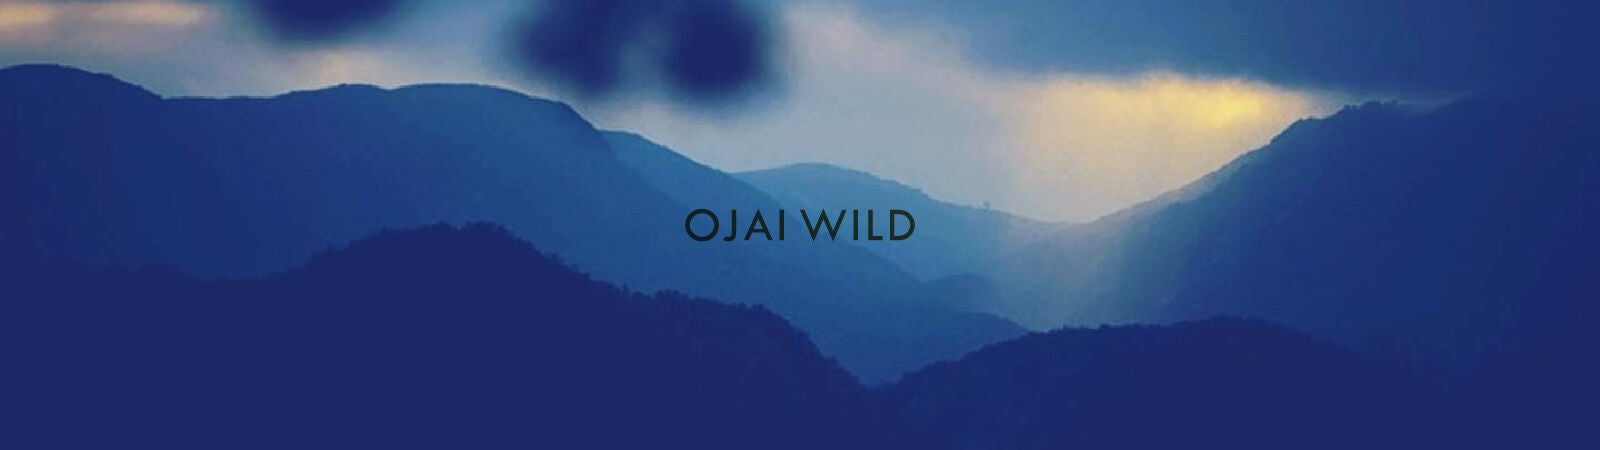 Ojai Wild Cologne & Fragances Inspired by & Crafted in California